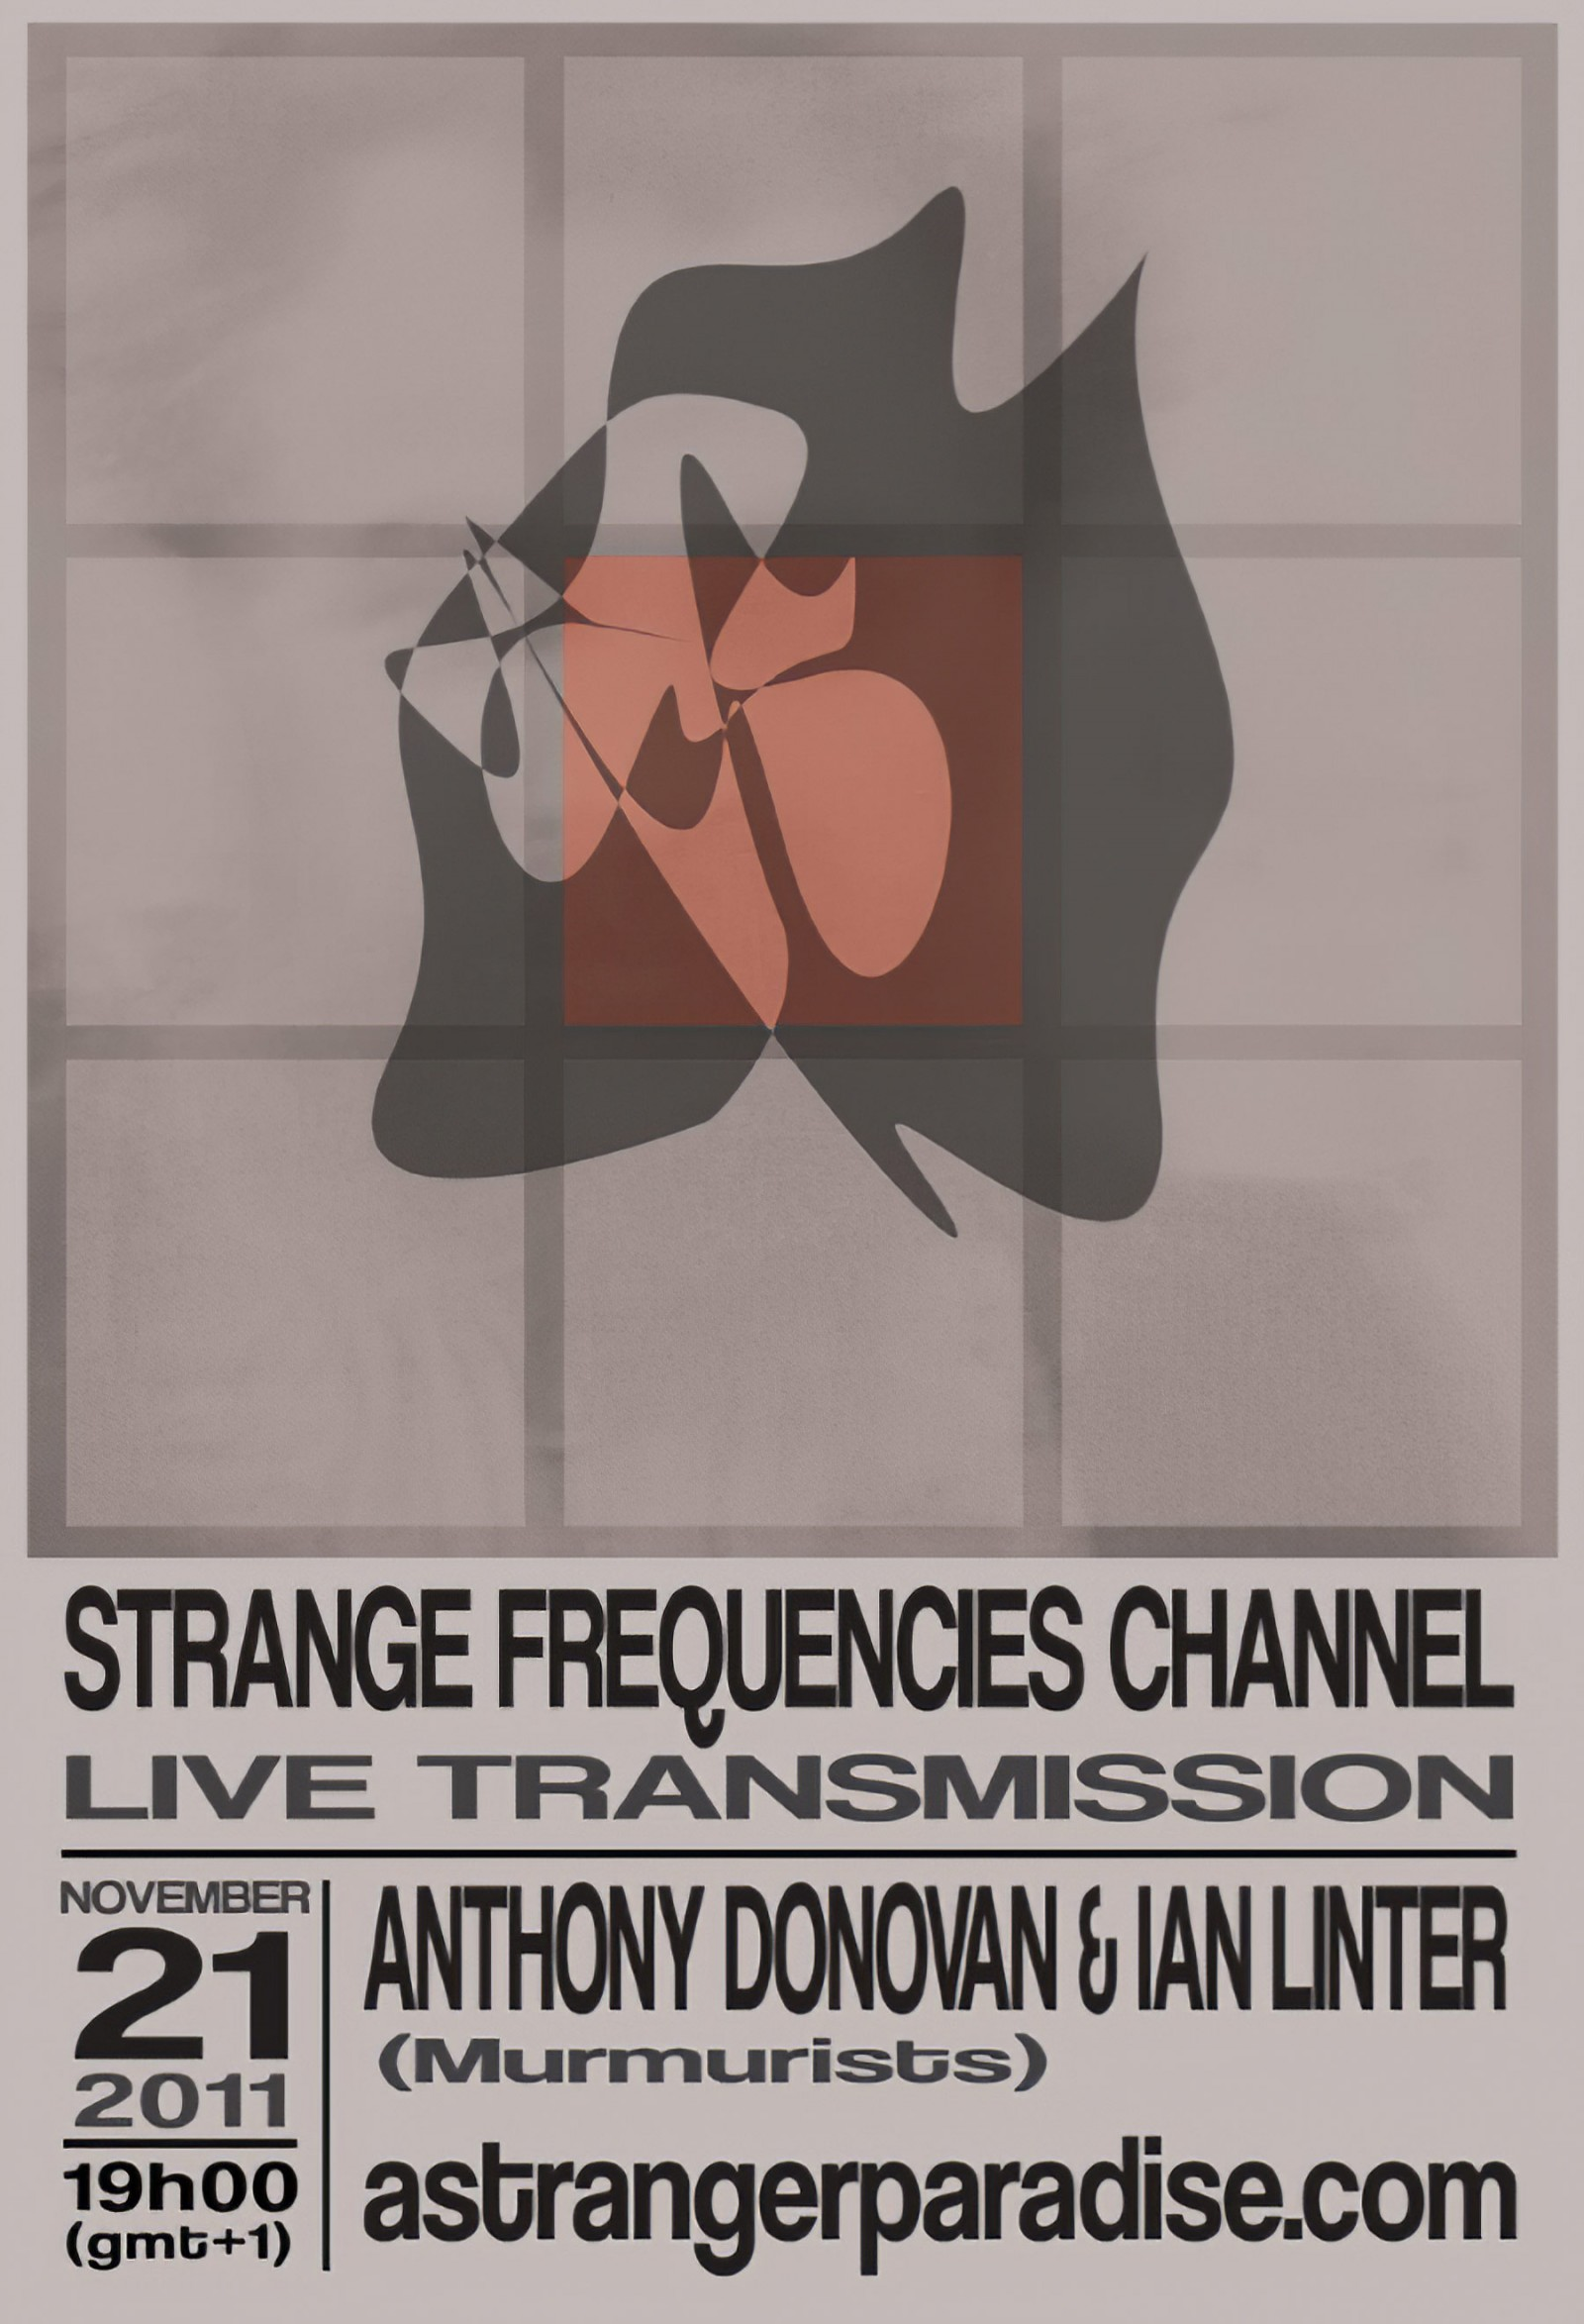 Strange Frequencies Channel Transmissions 21-11-2011